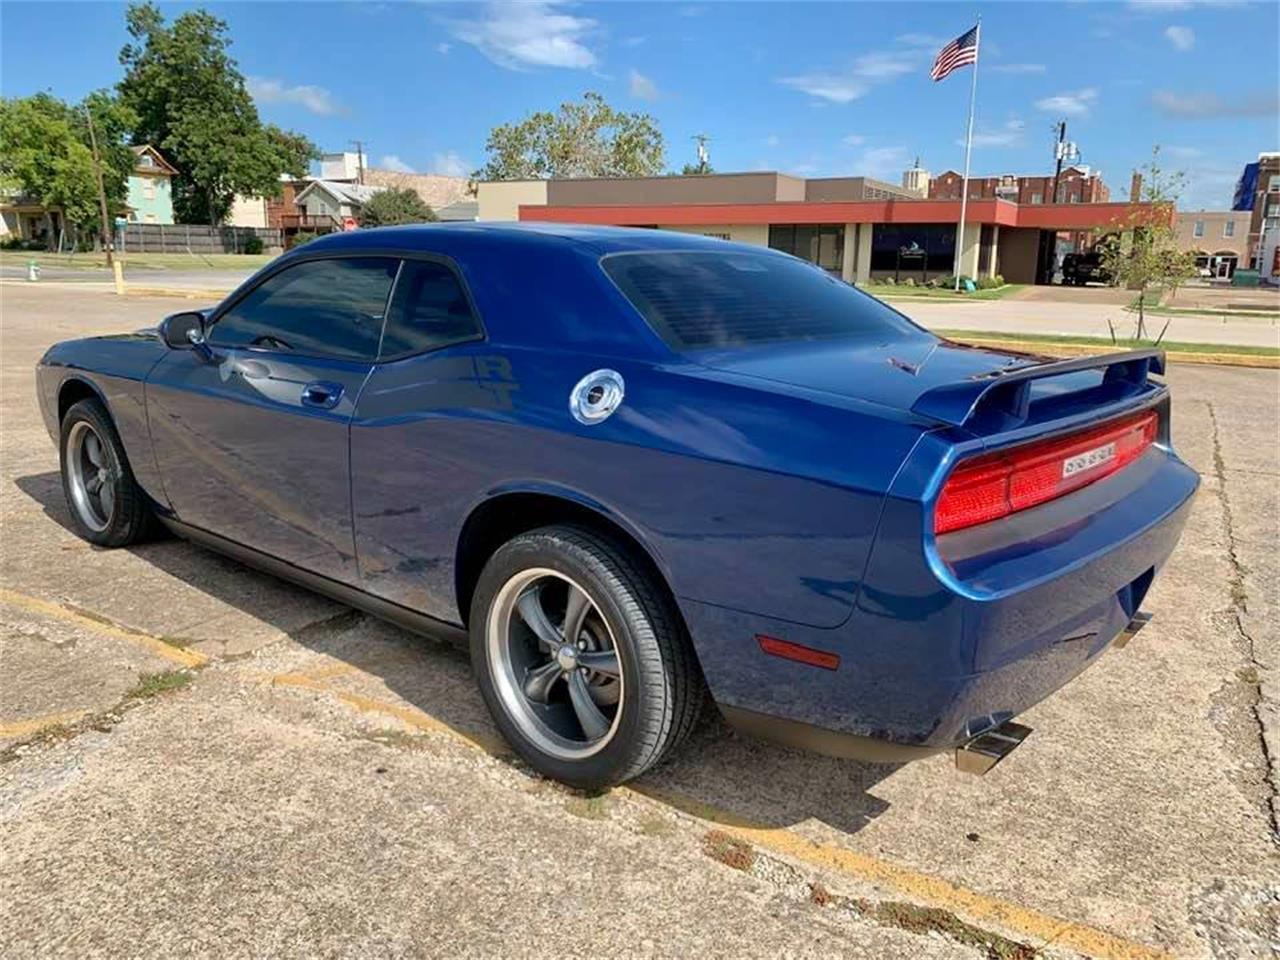 2010 Dodge Challenger R/T (CC-1385464) for sale in Denison, Texas